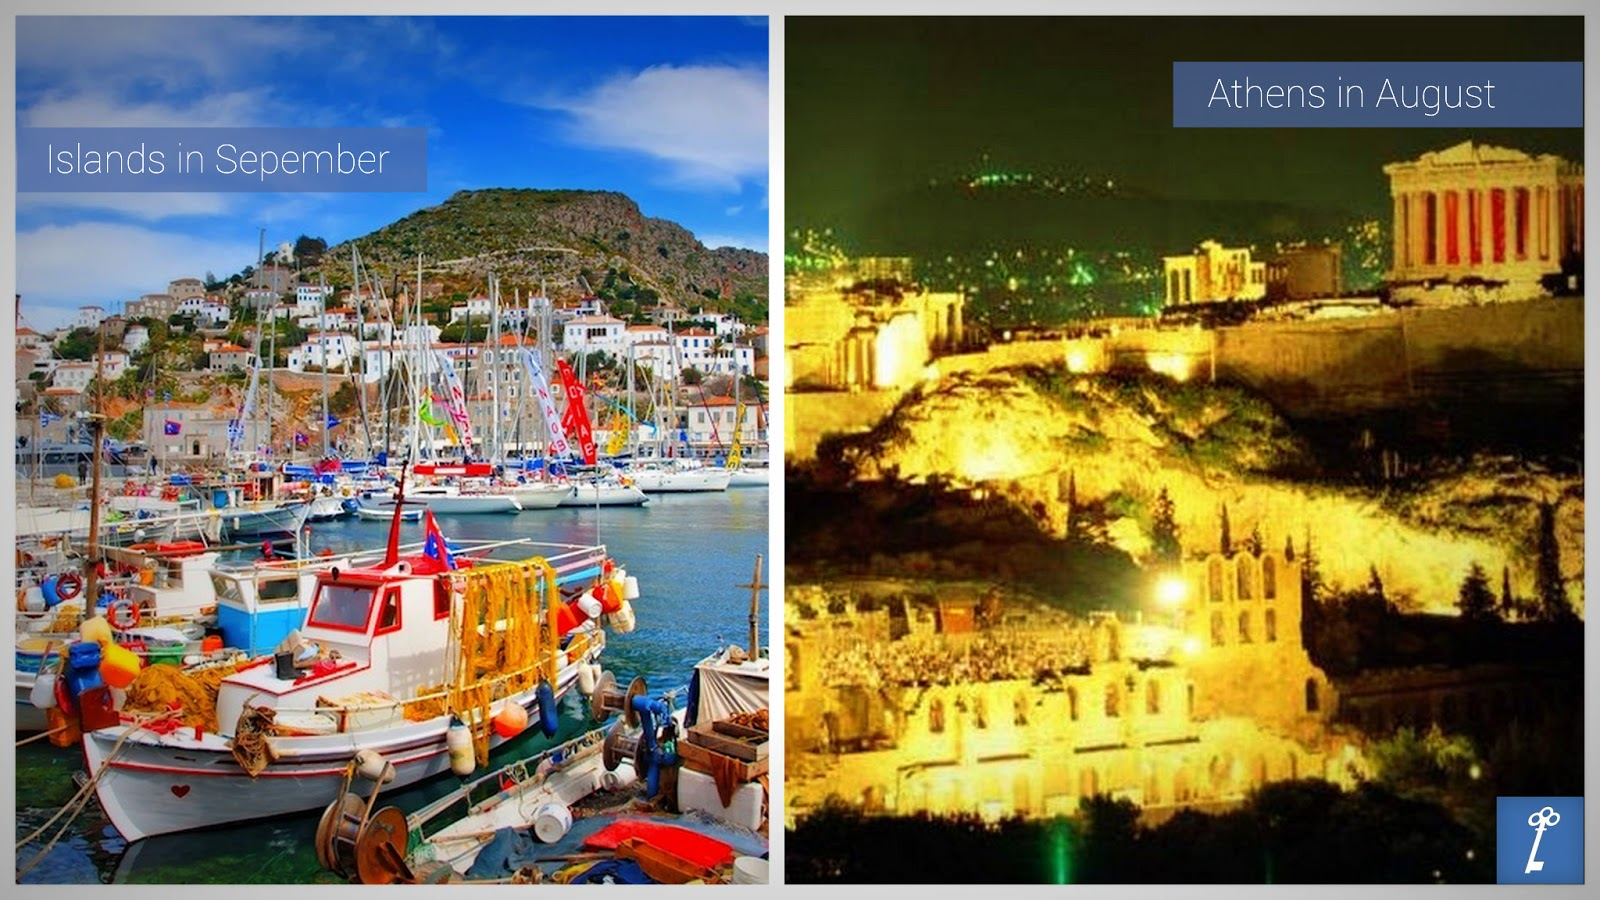 KeyTours Discover Athens in August Greek islands in